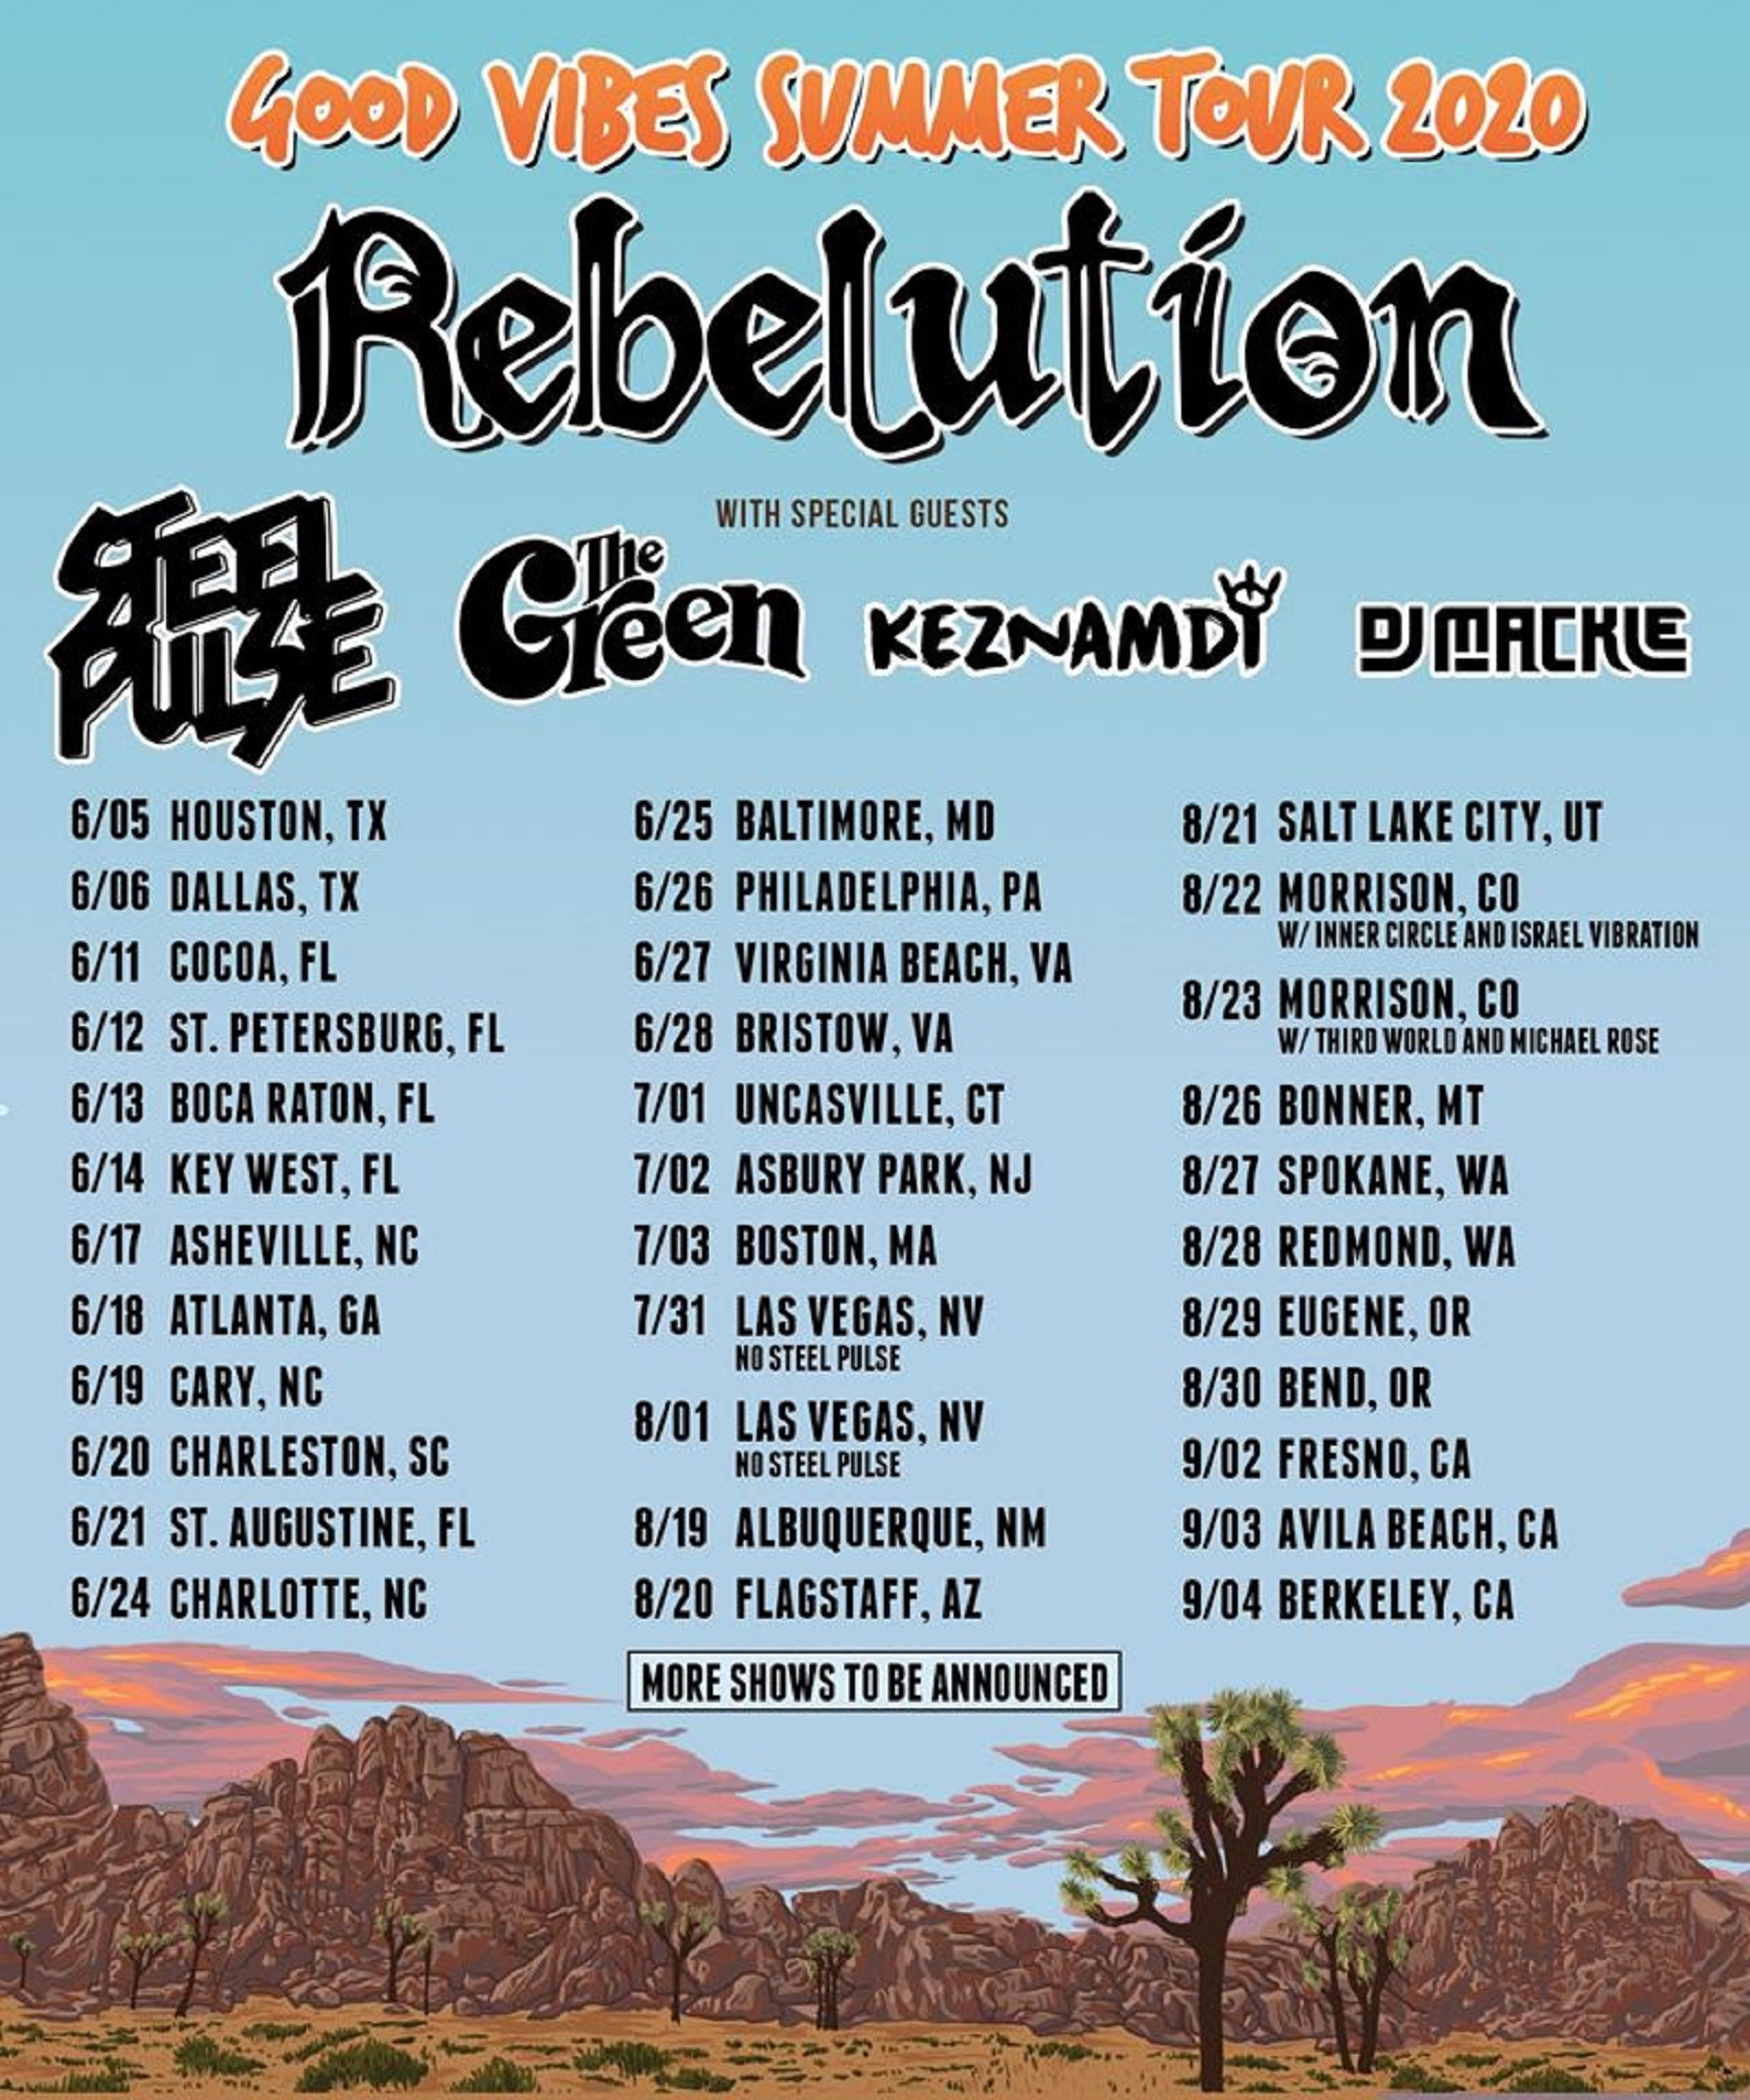 REBELUTION Announce Good Vibes Summer Tour 2020!